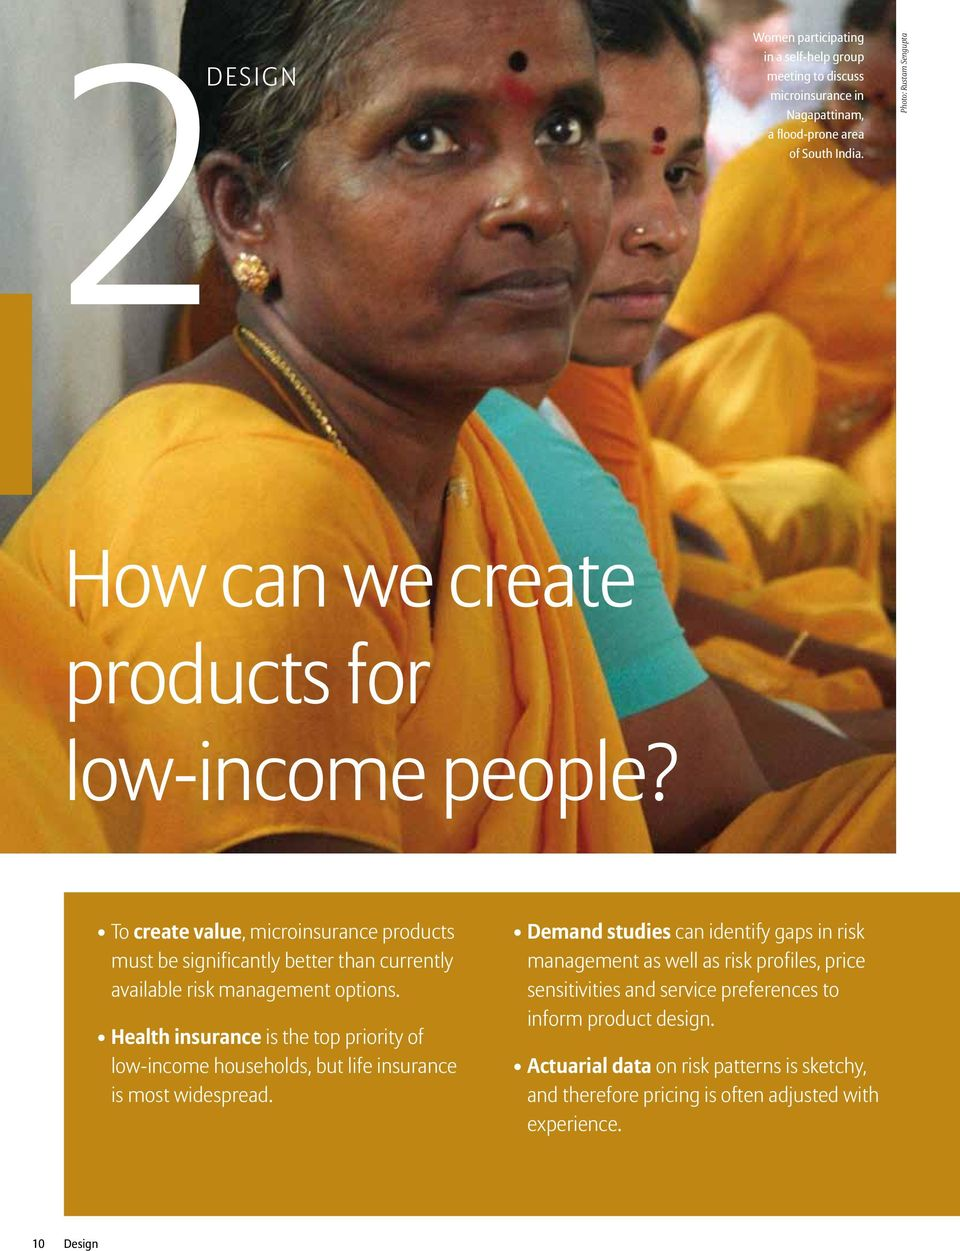 To create value, microinsurance products must be significantly better than currently available risk management options.